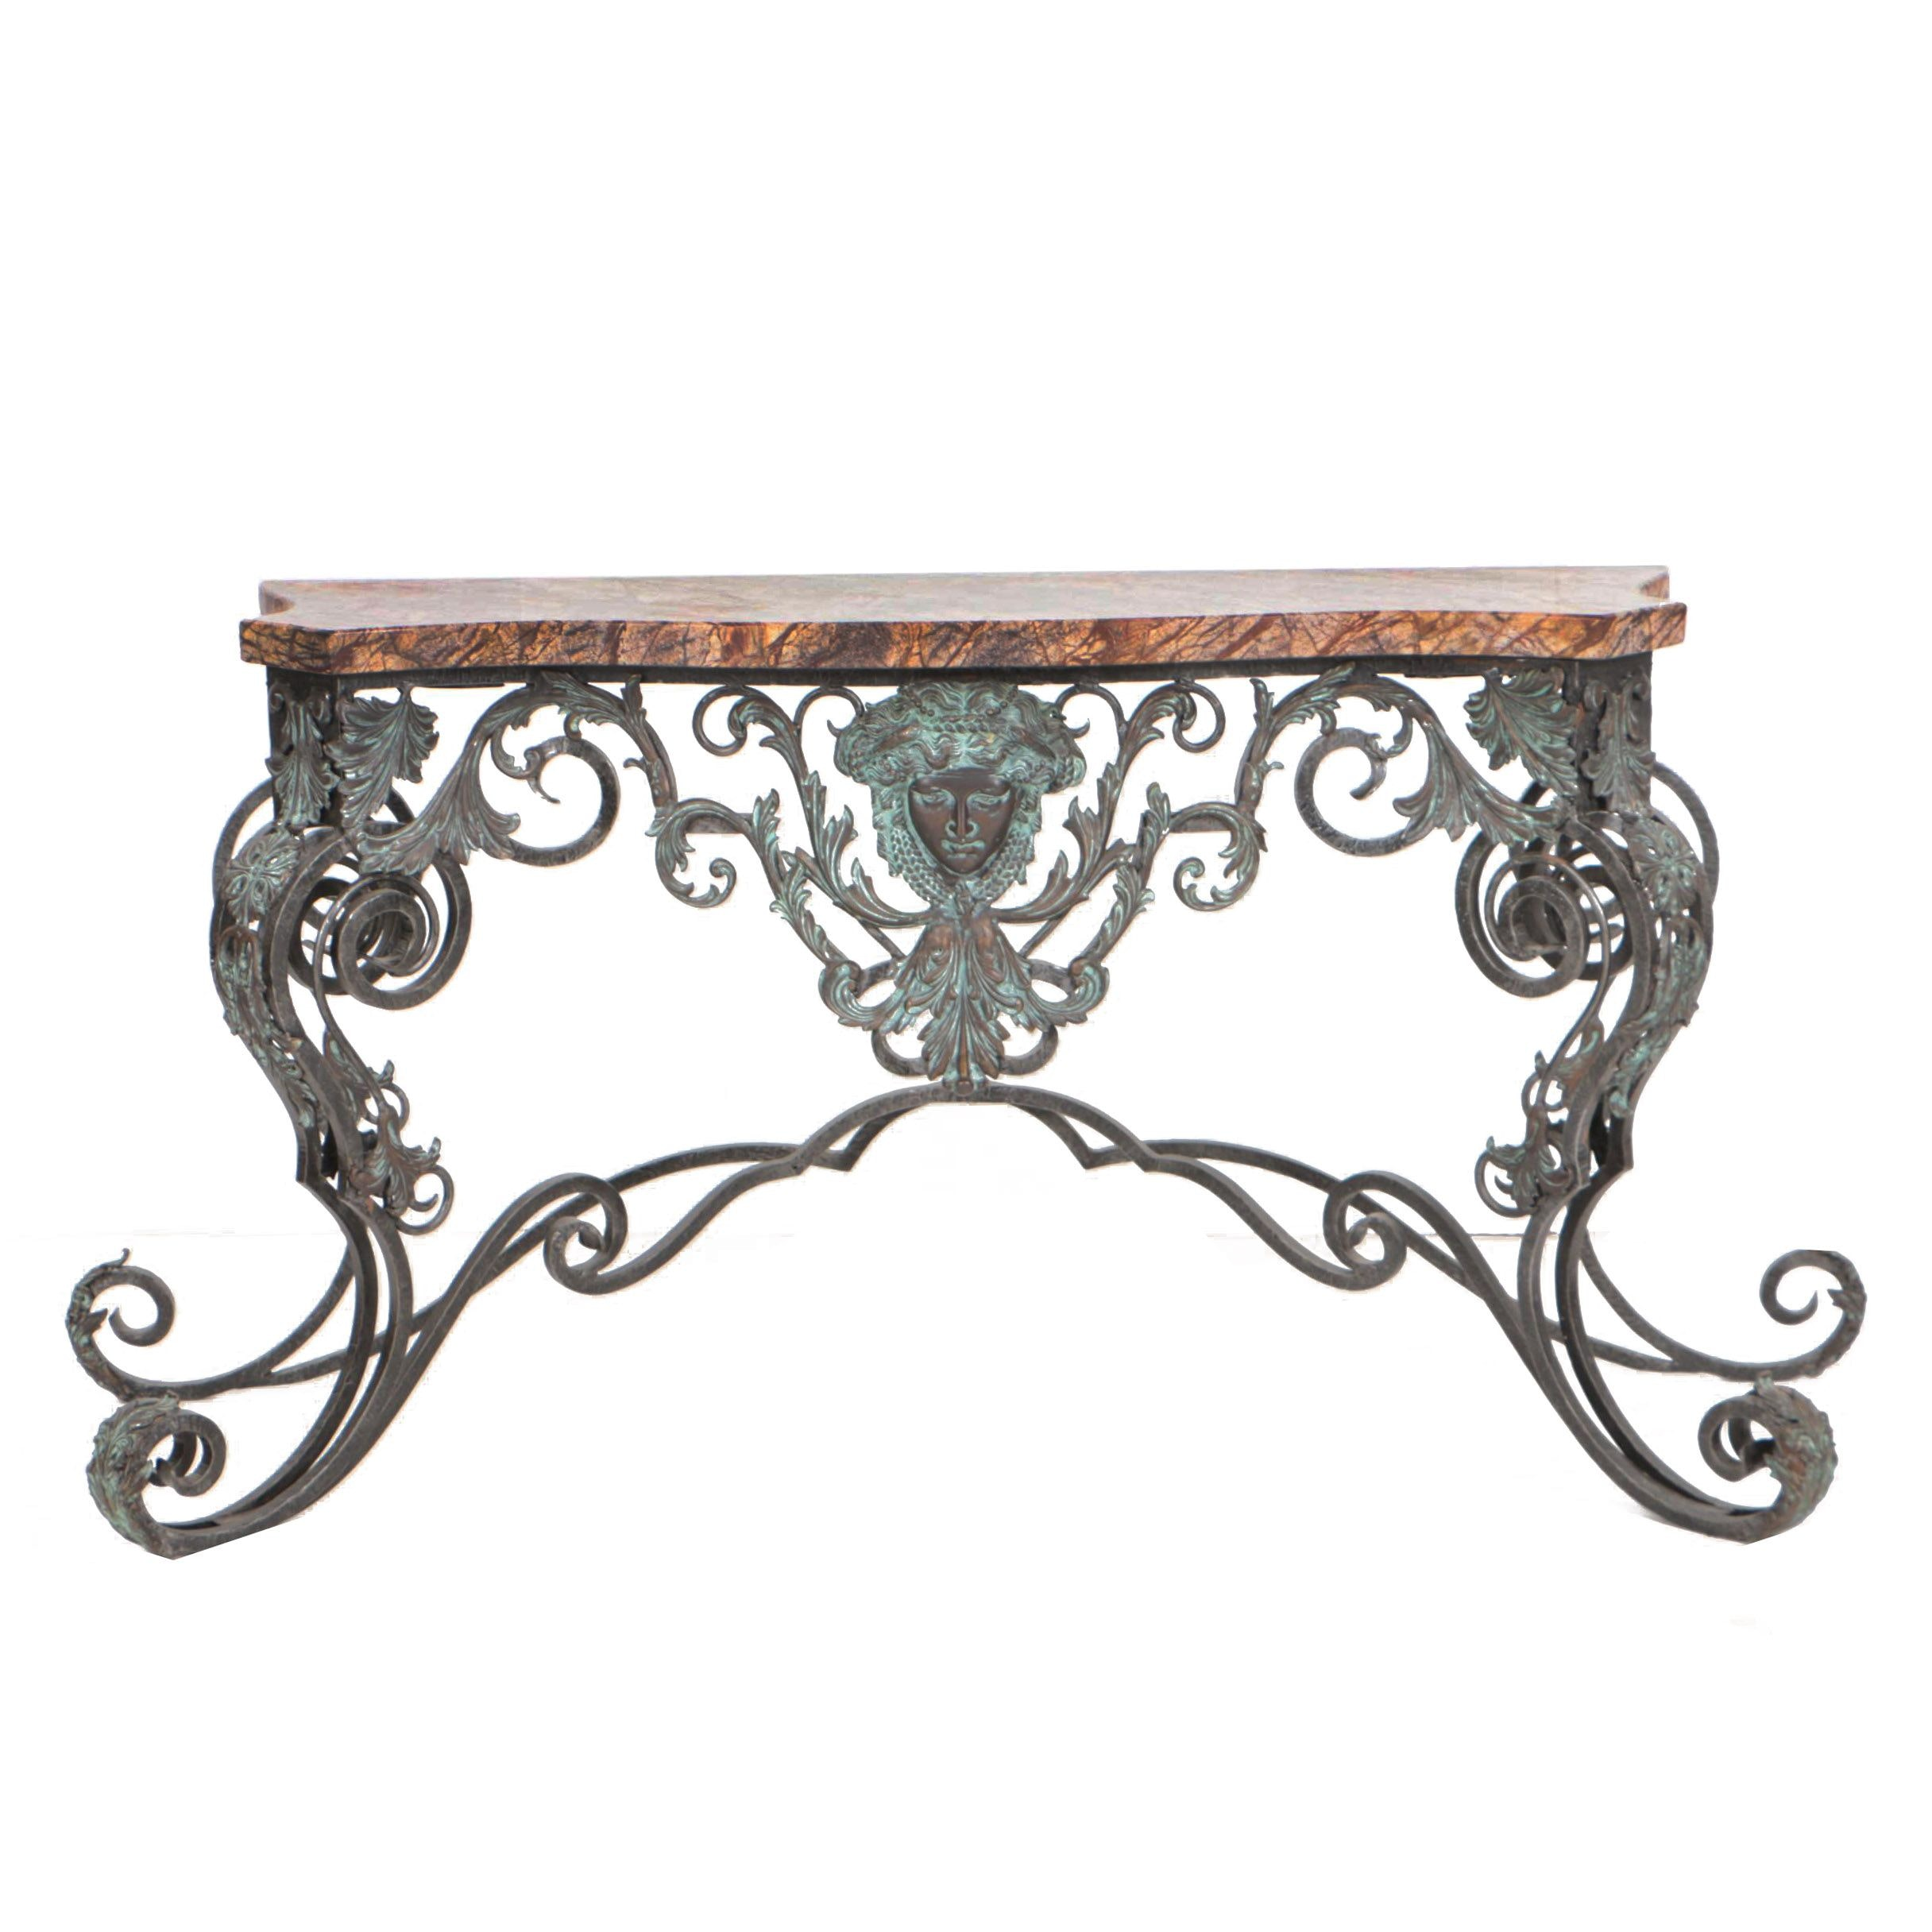 Wrought and Cast Iron Console Table with Marble Top, Possibly by Maitland-Smith